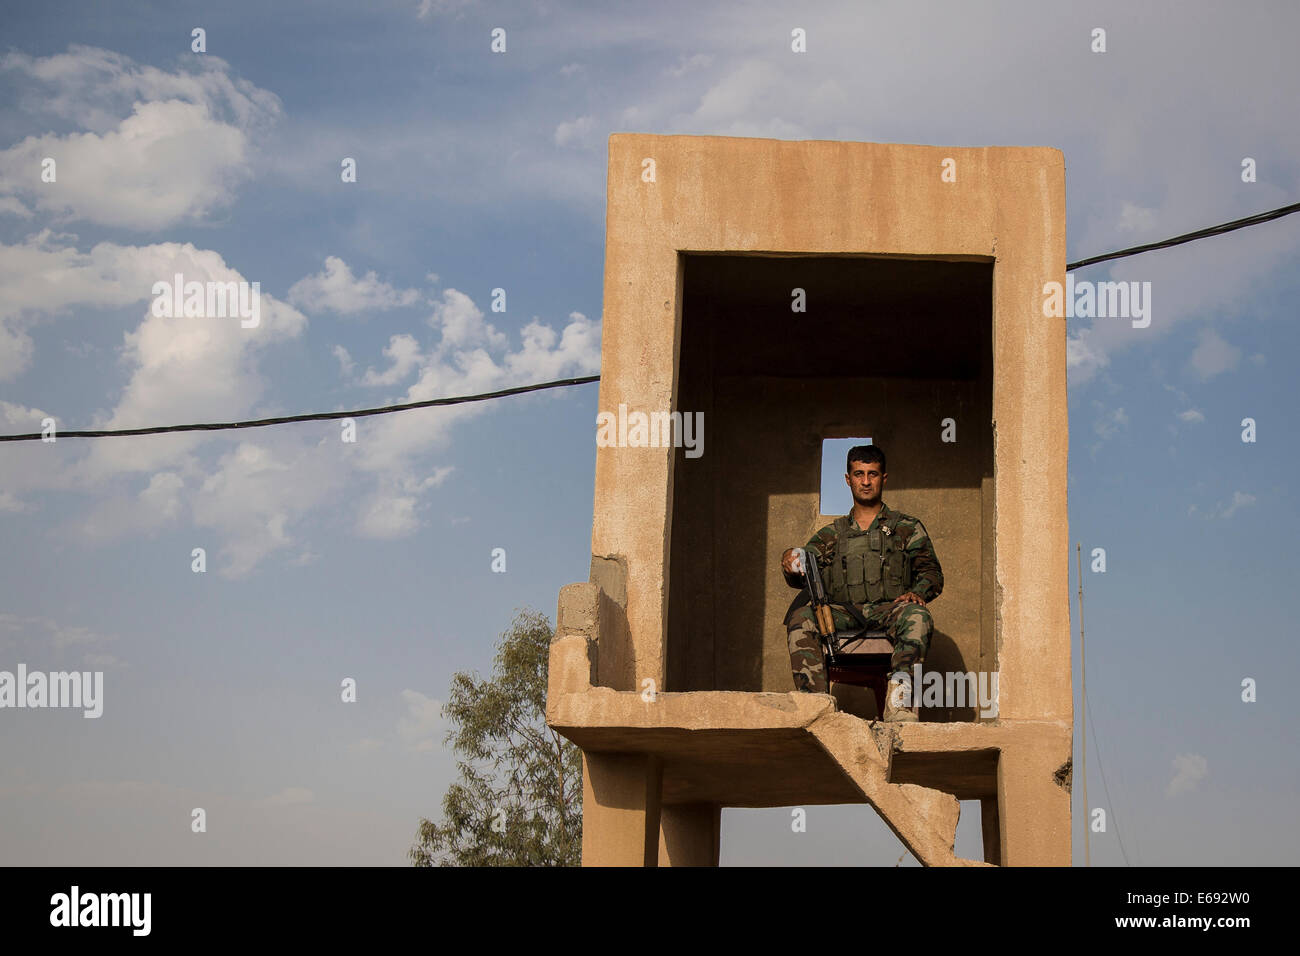 Makhmour, Northern Iraq. 18th Aug, 2014. A Peshmerga soldier is seen in a watch tower at the DPK Peshmerga base. Stock Photo